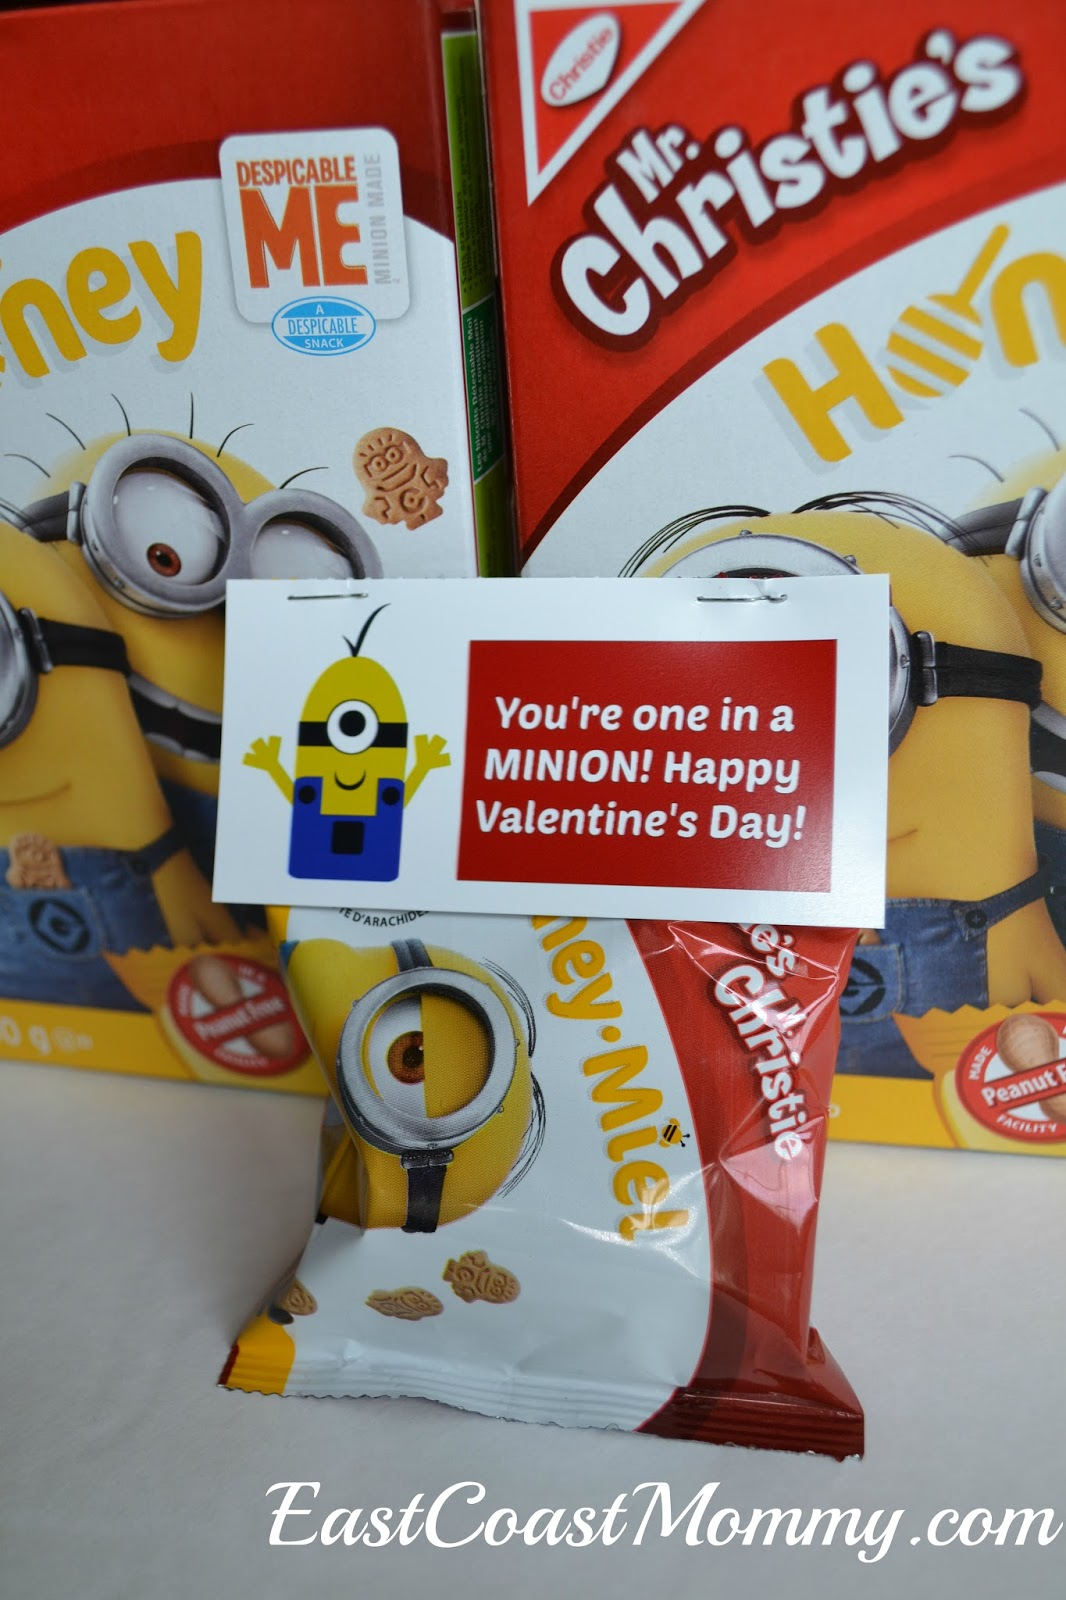 ... I Adore These Adorable Minion Valentines! These Free, Printable Tags I  Designed Can Be Used With Any Minion Treat Or Trinket, But I Attached The  Tags To ...